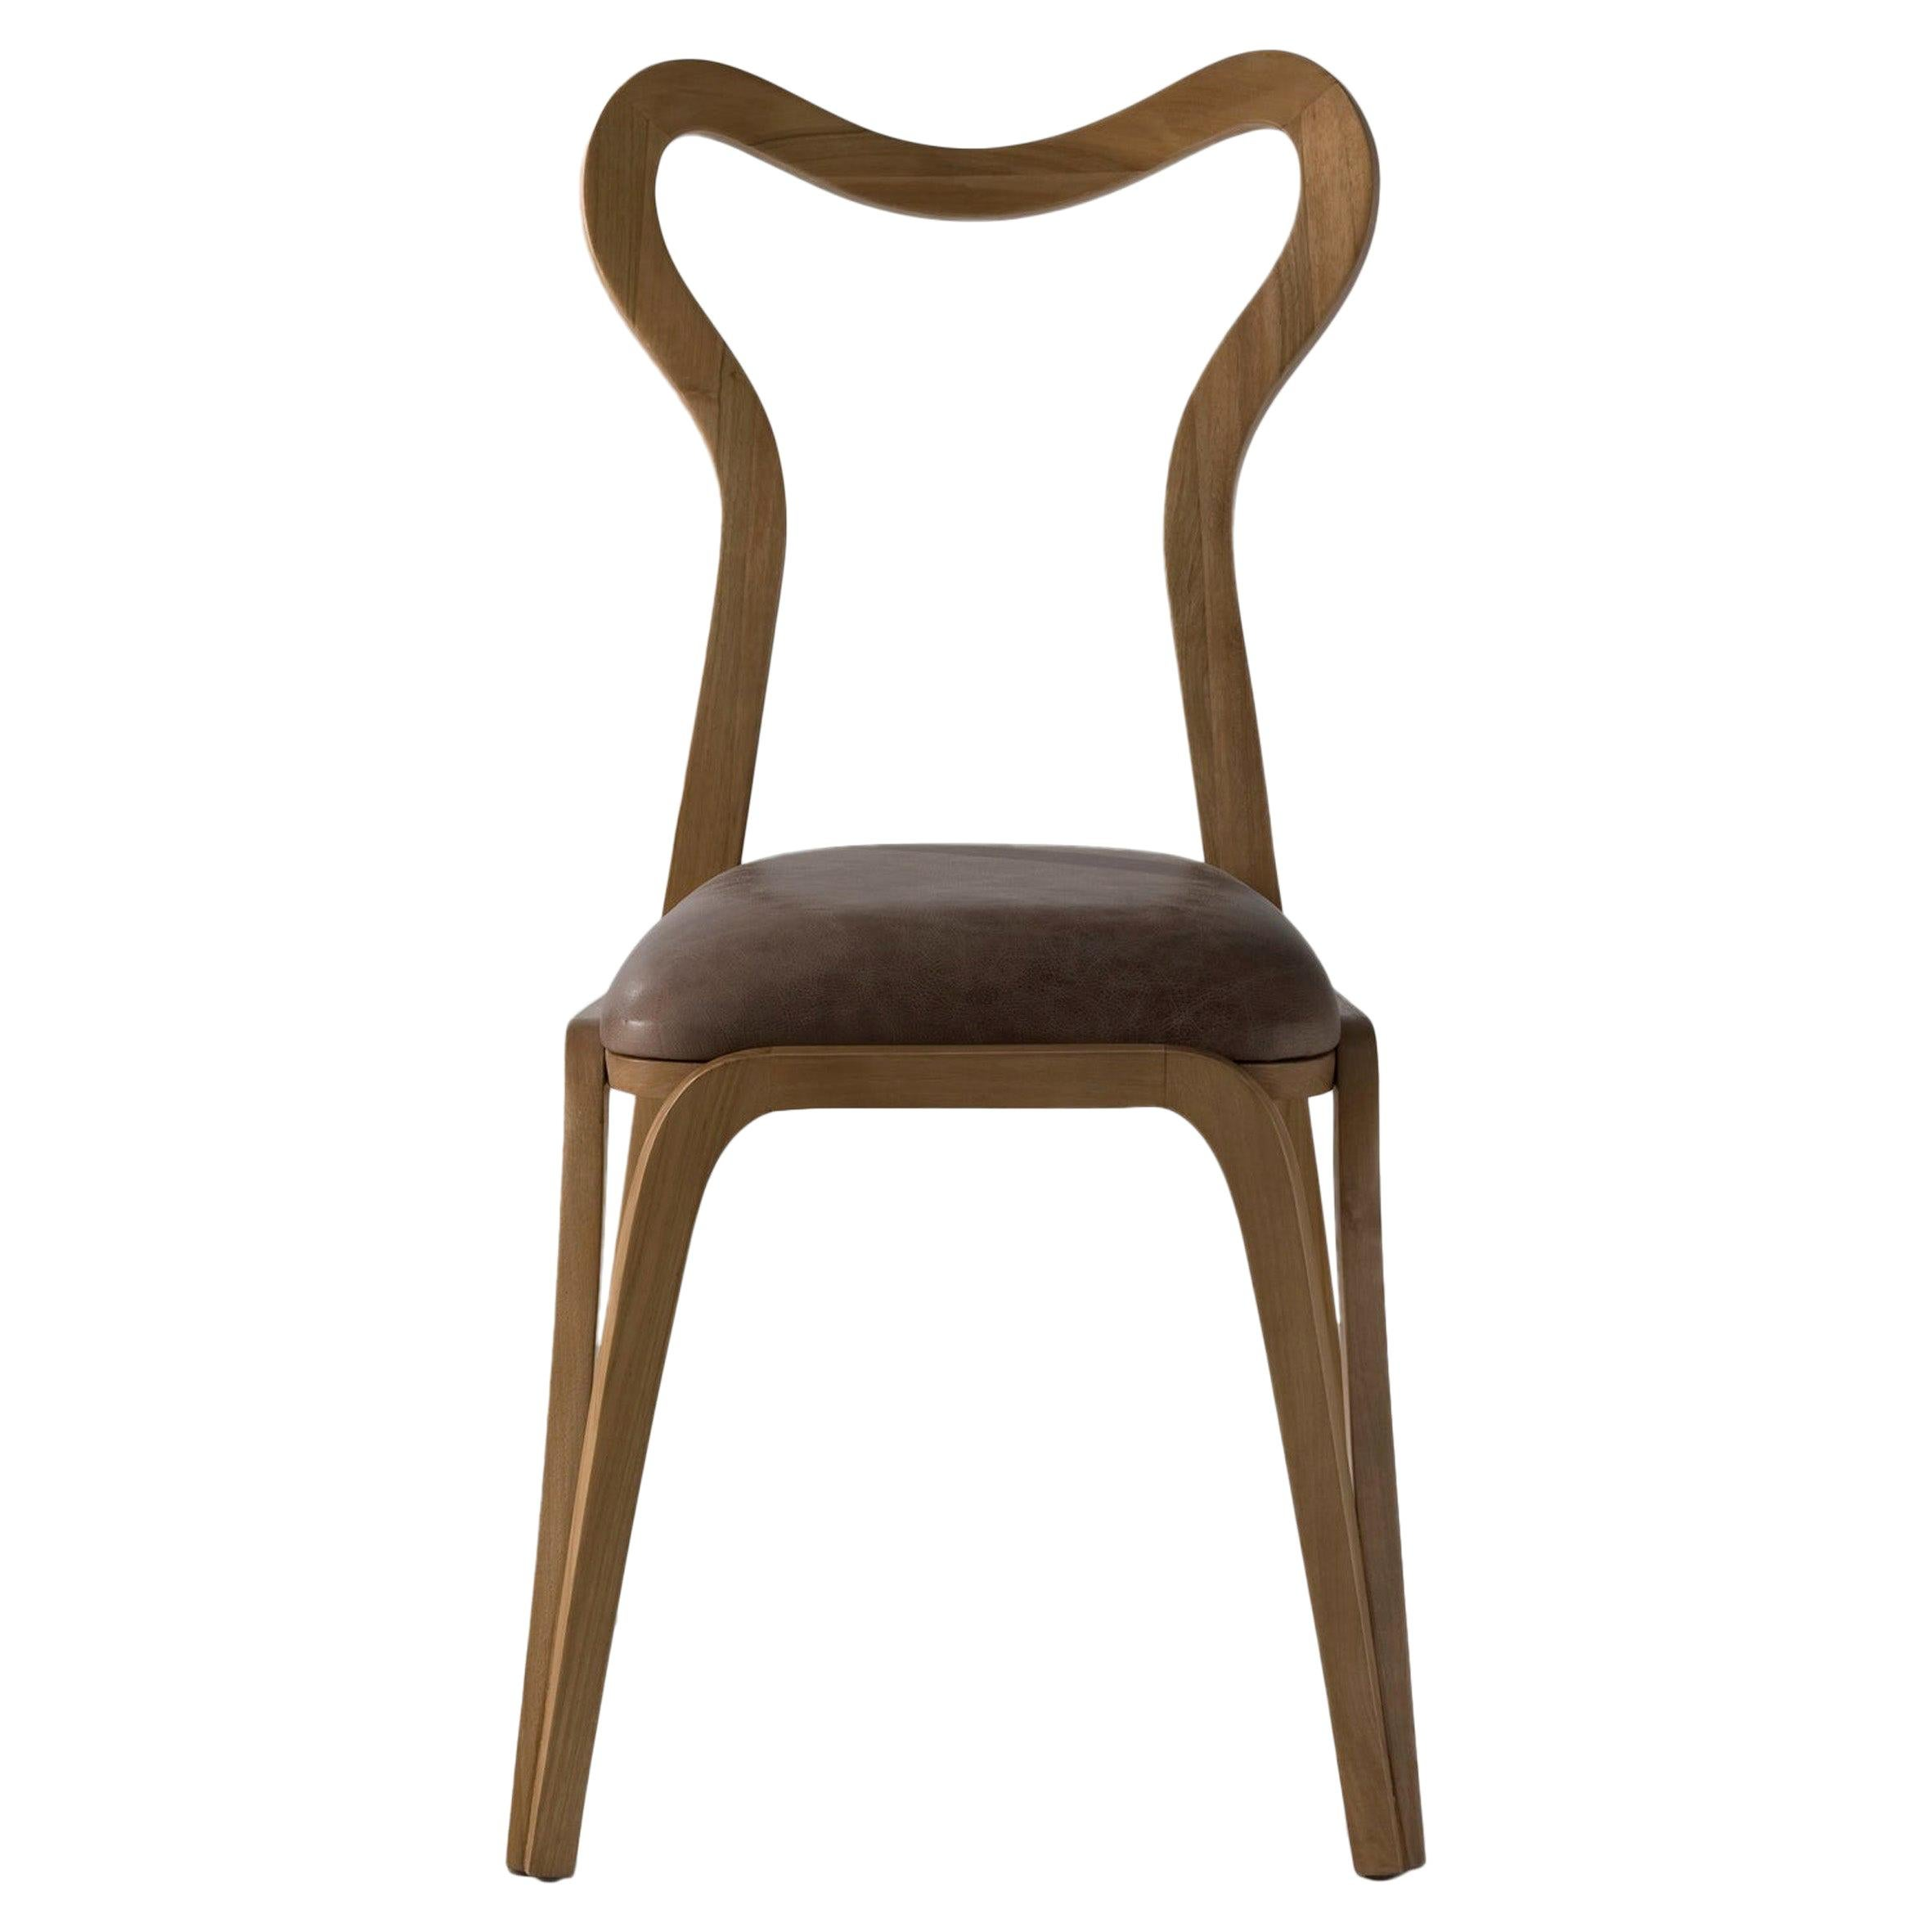 Dining Chair in Wood and with Upholstered Seat